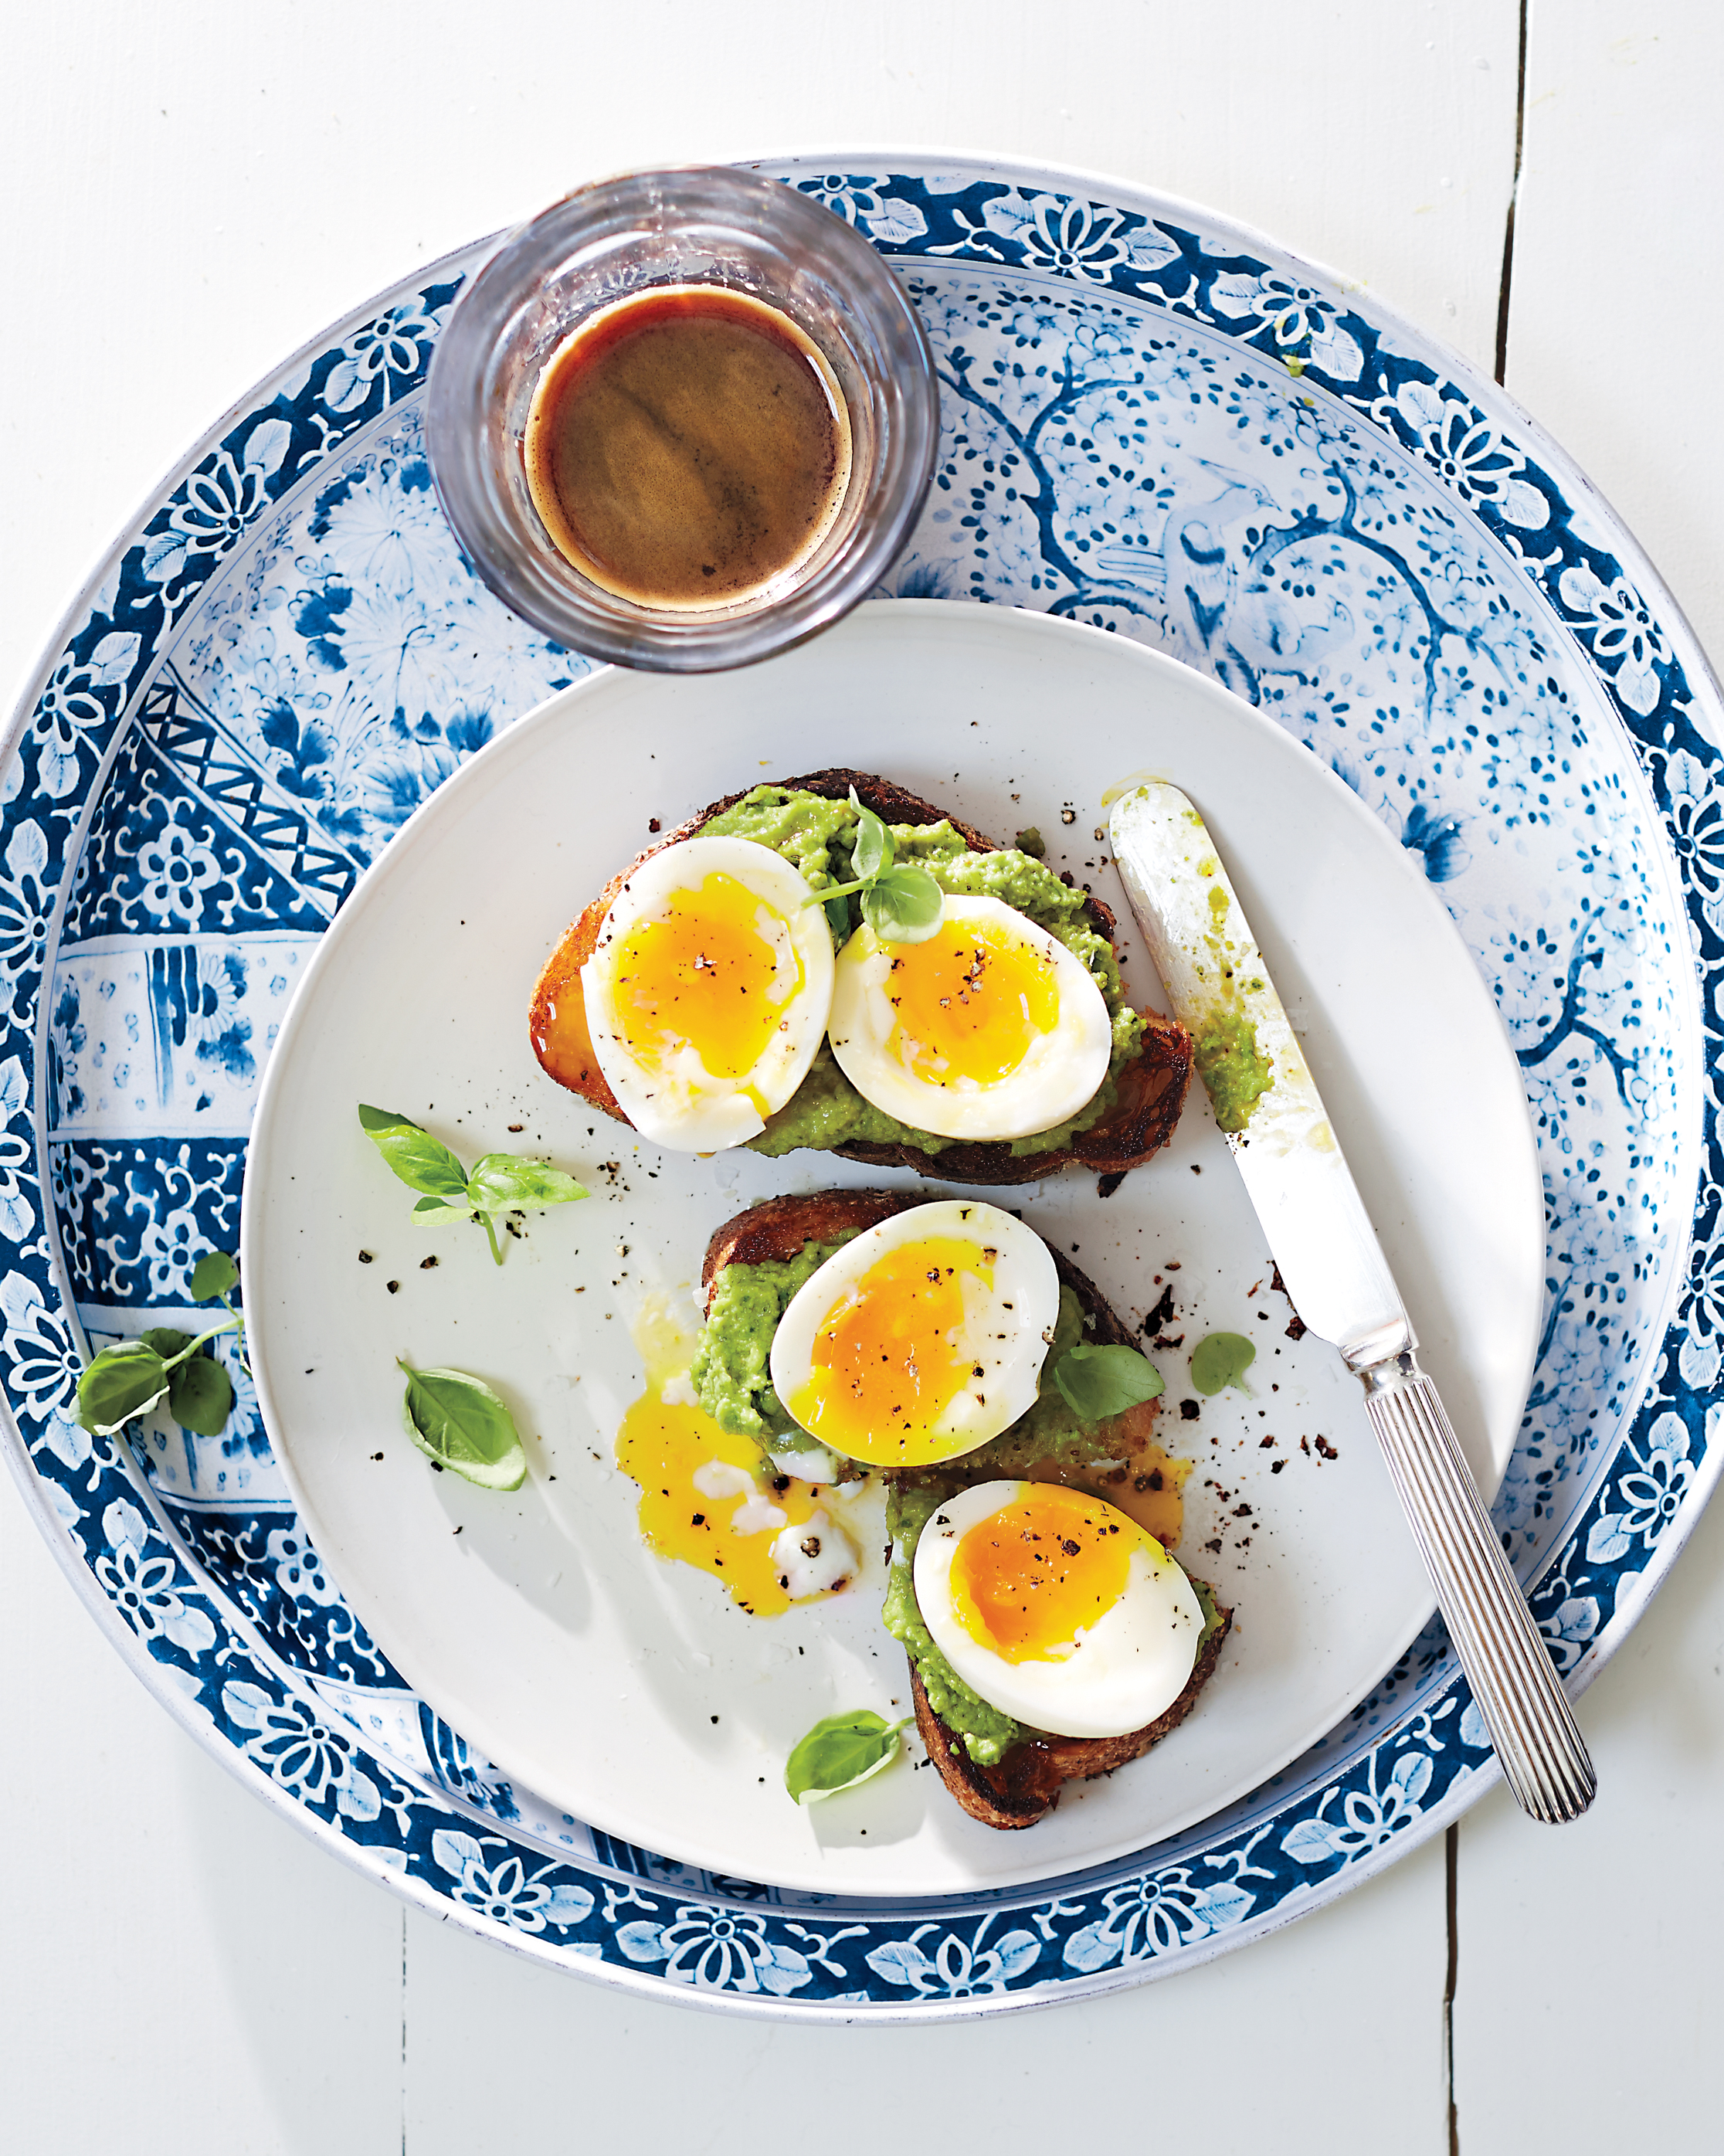 Green-Pea Pesto Toasts with Soft-Cooked Eggs